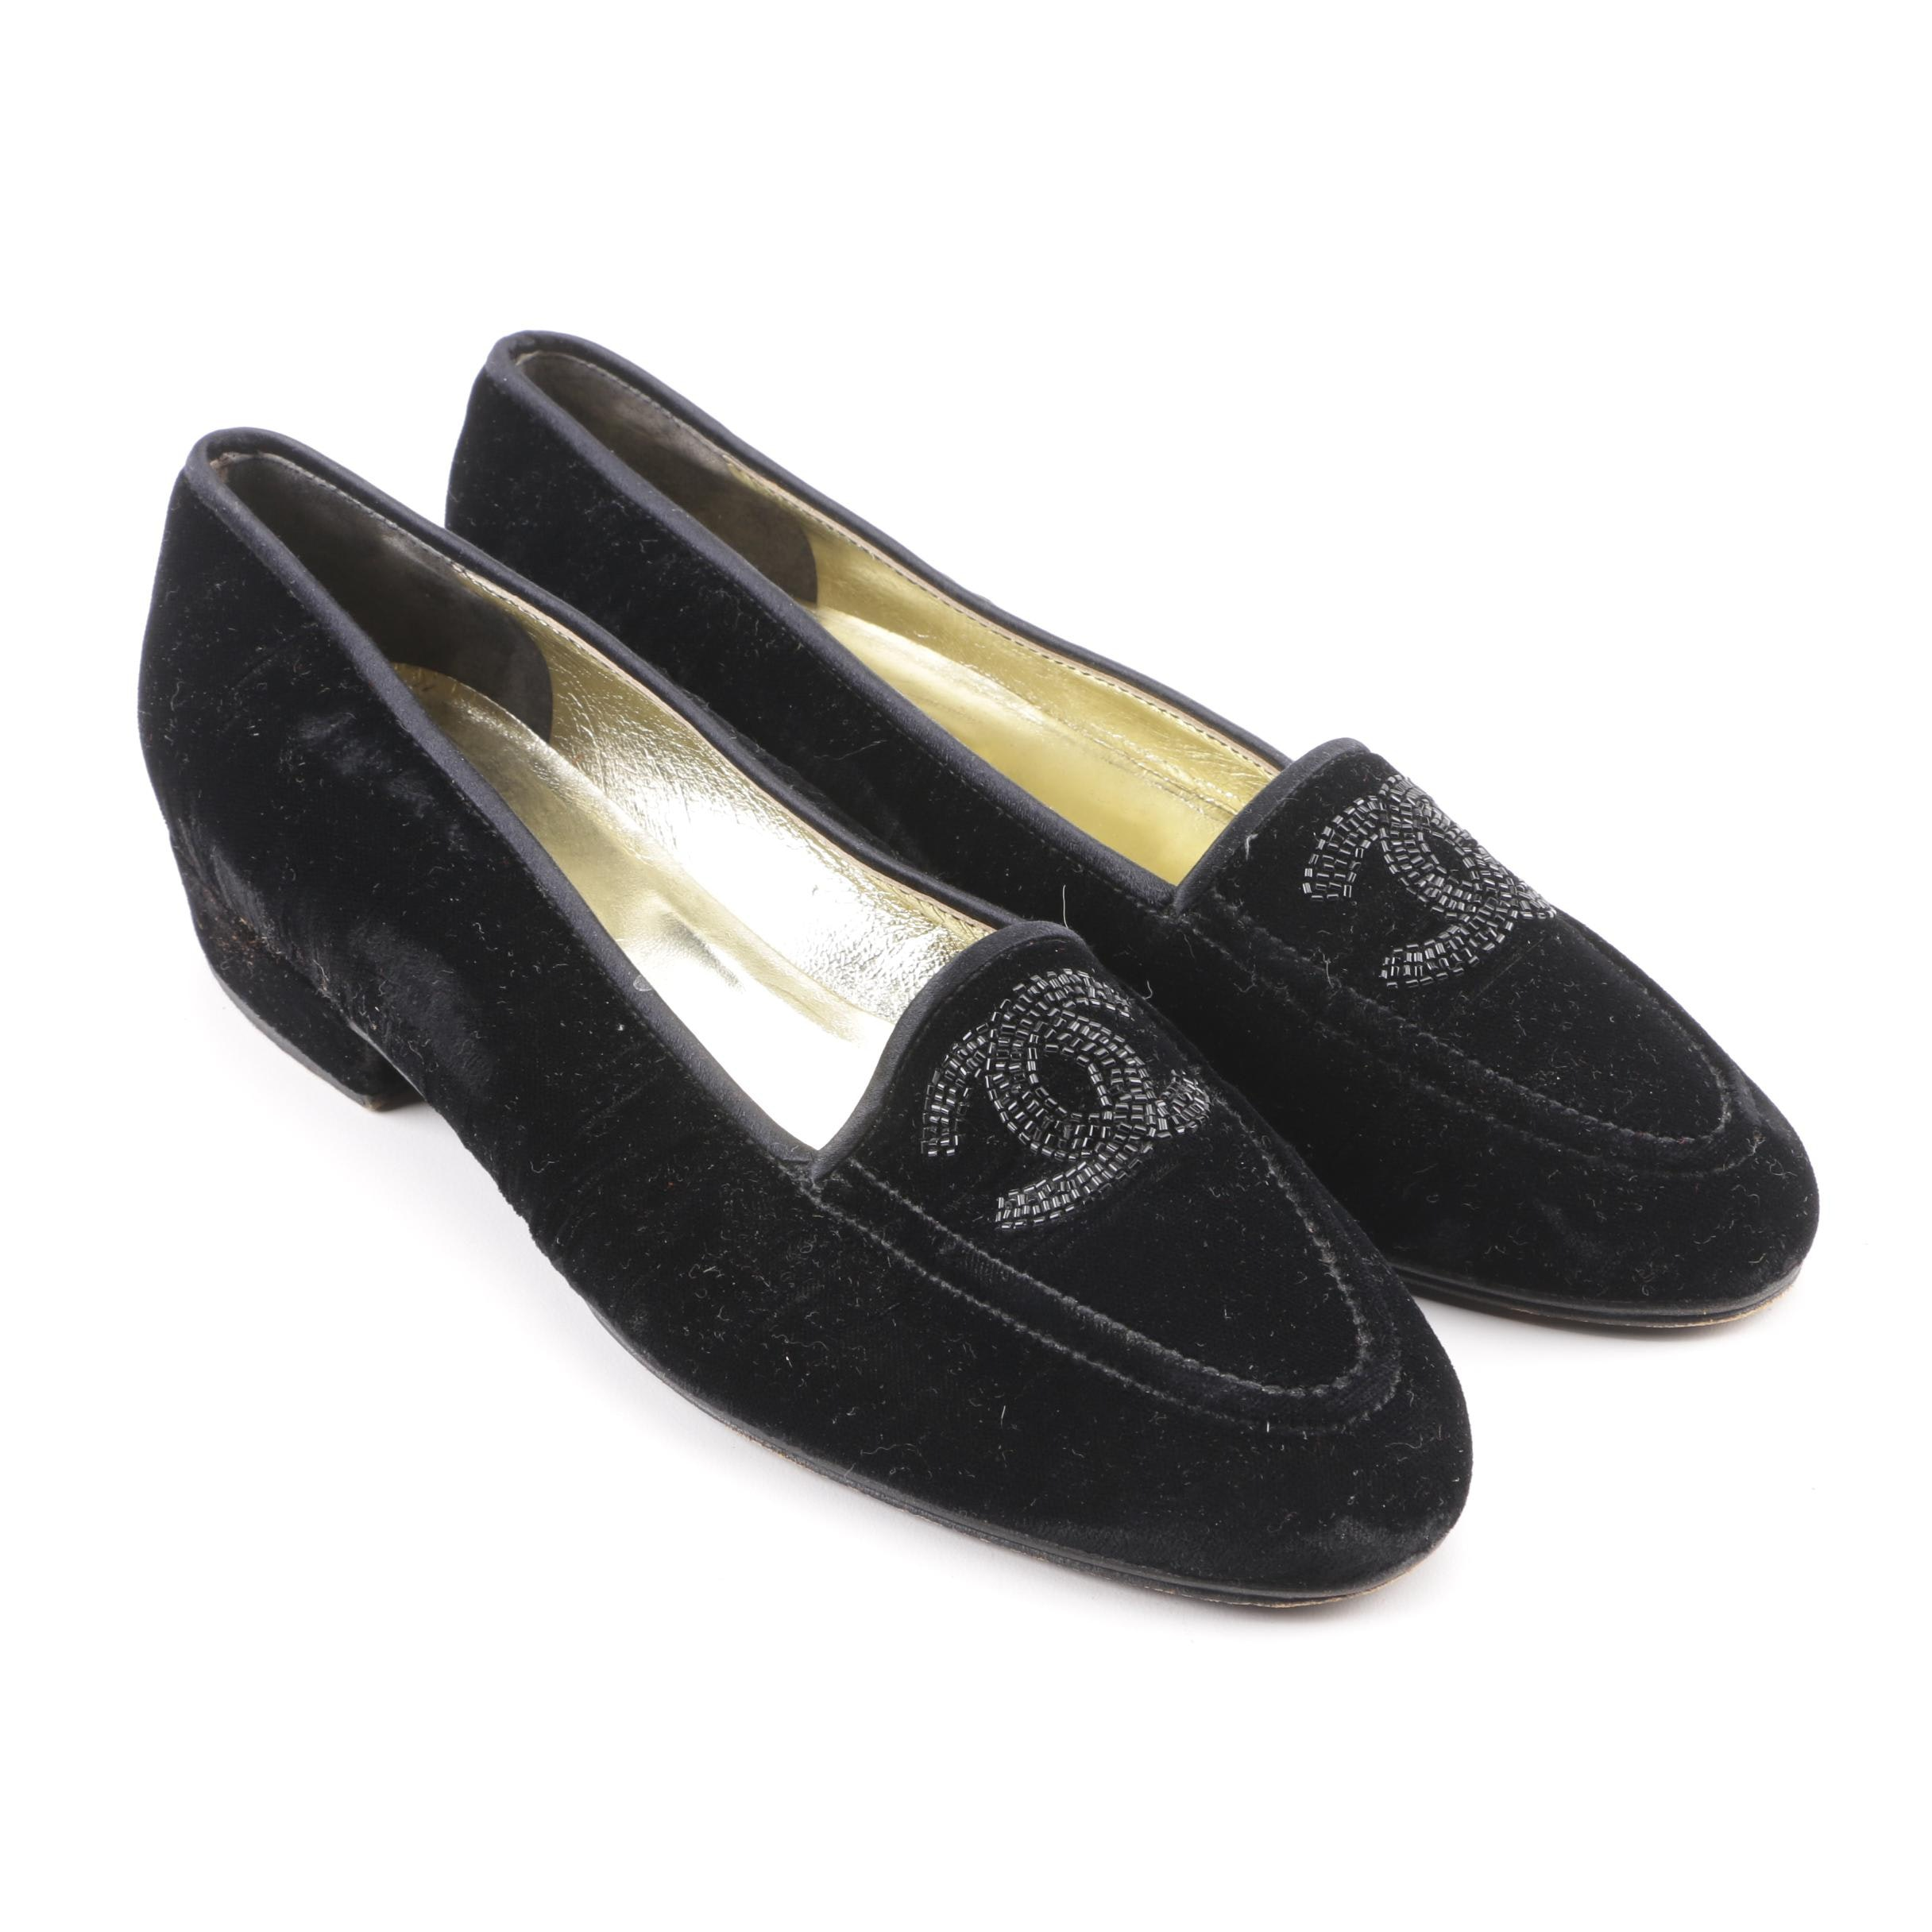 Women's Vintage Chanel Black Velvet Loafers with Beaded CC Logos